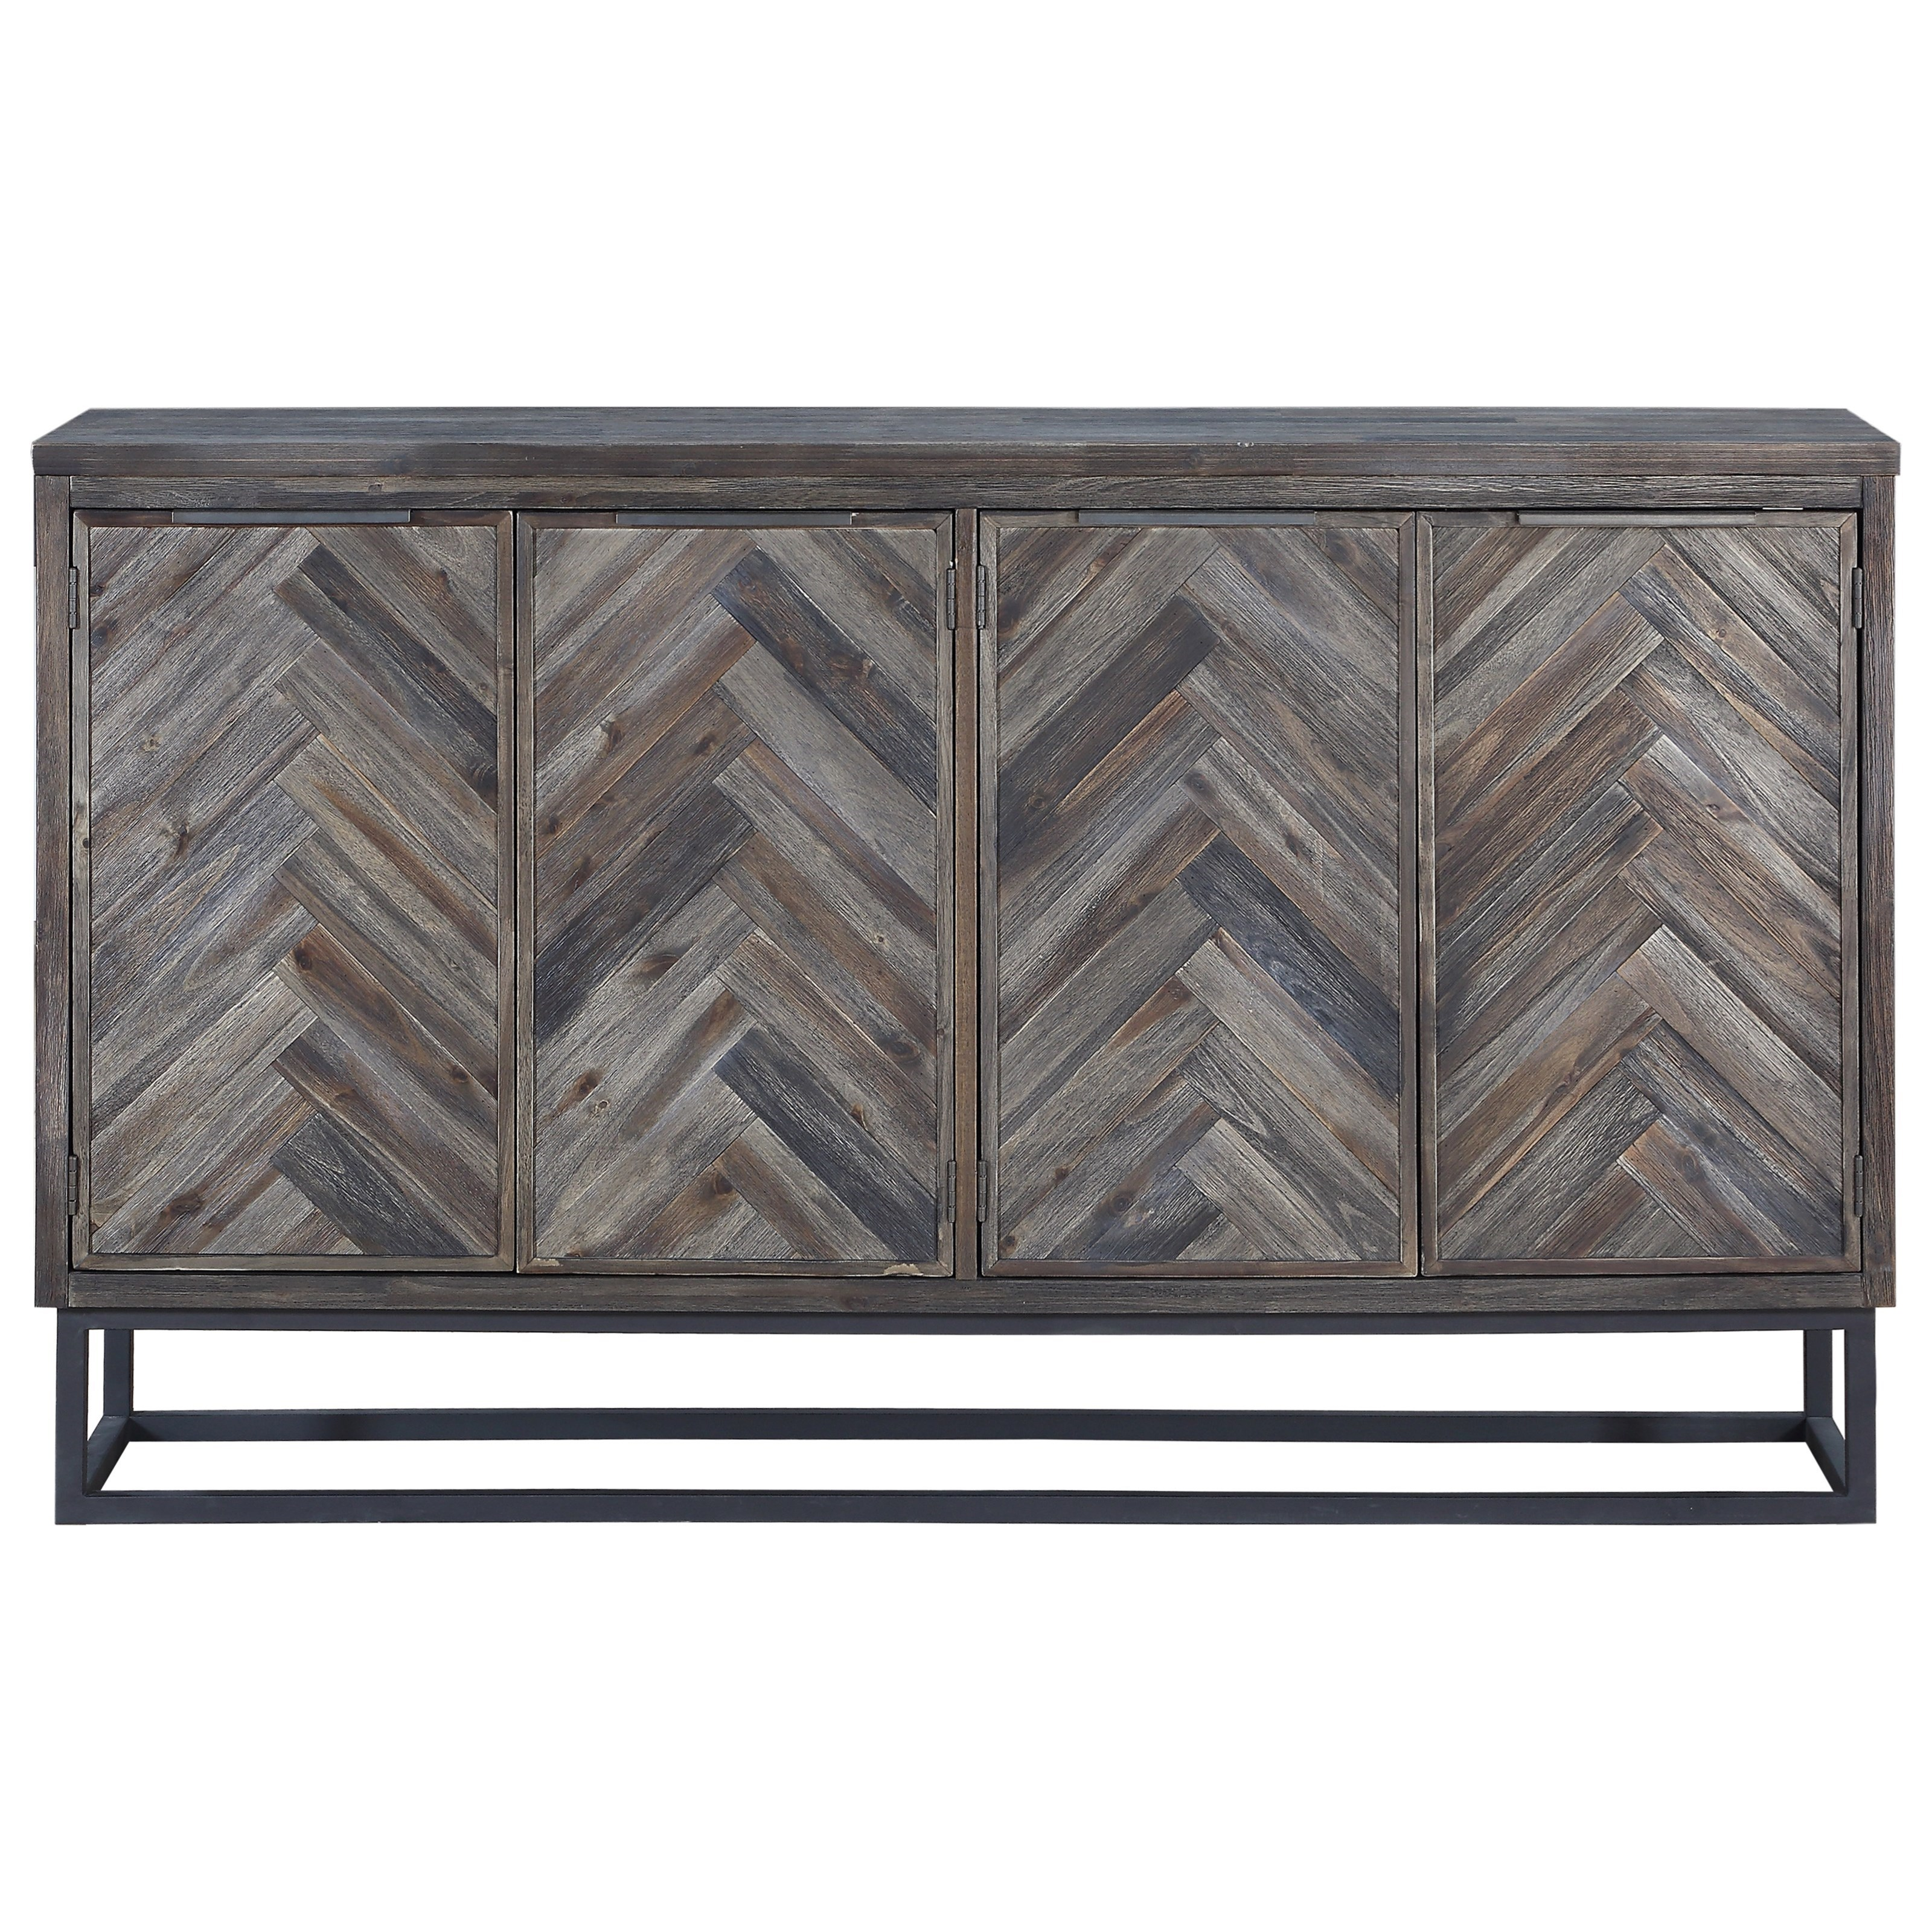 Aspen Court Four Door Media Credenza by C2C at Walker's Furniture